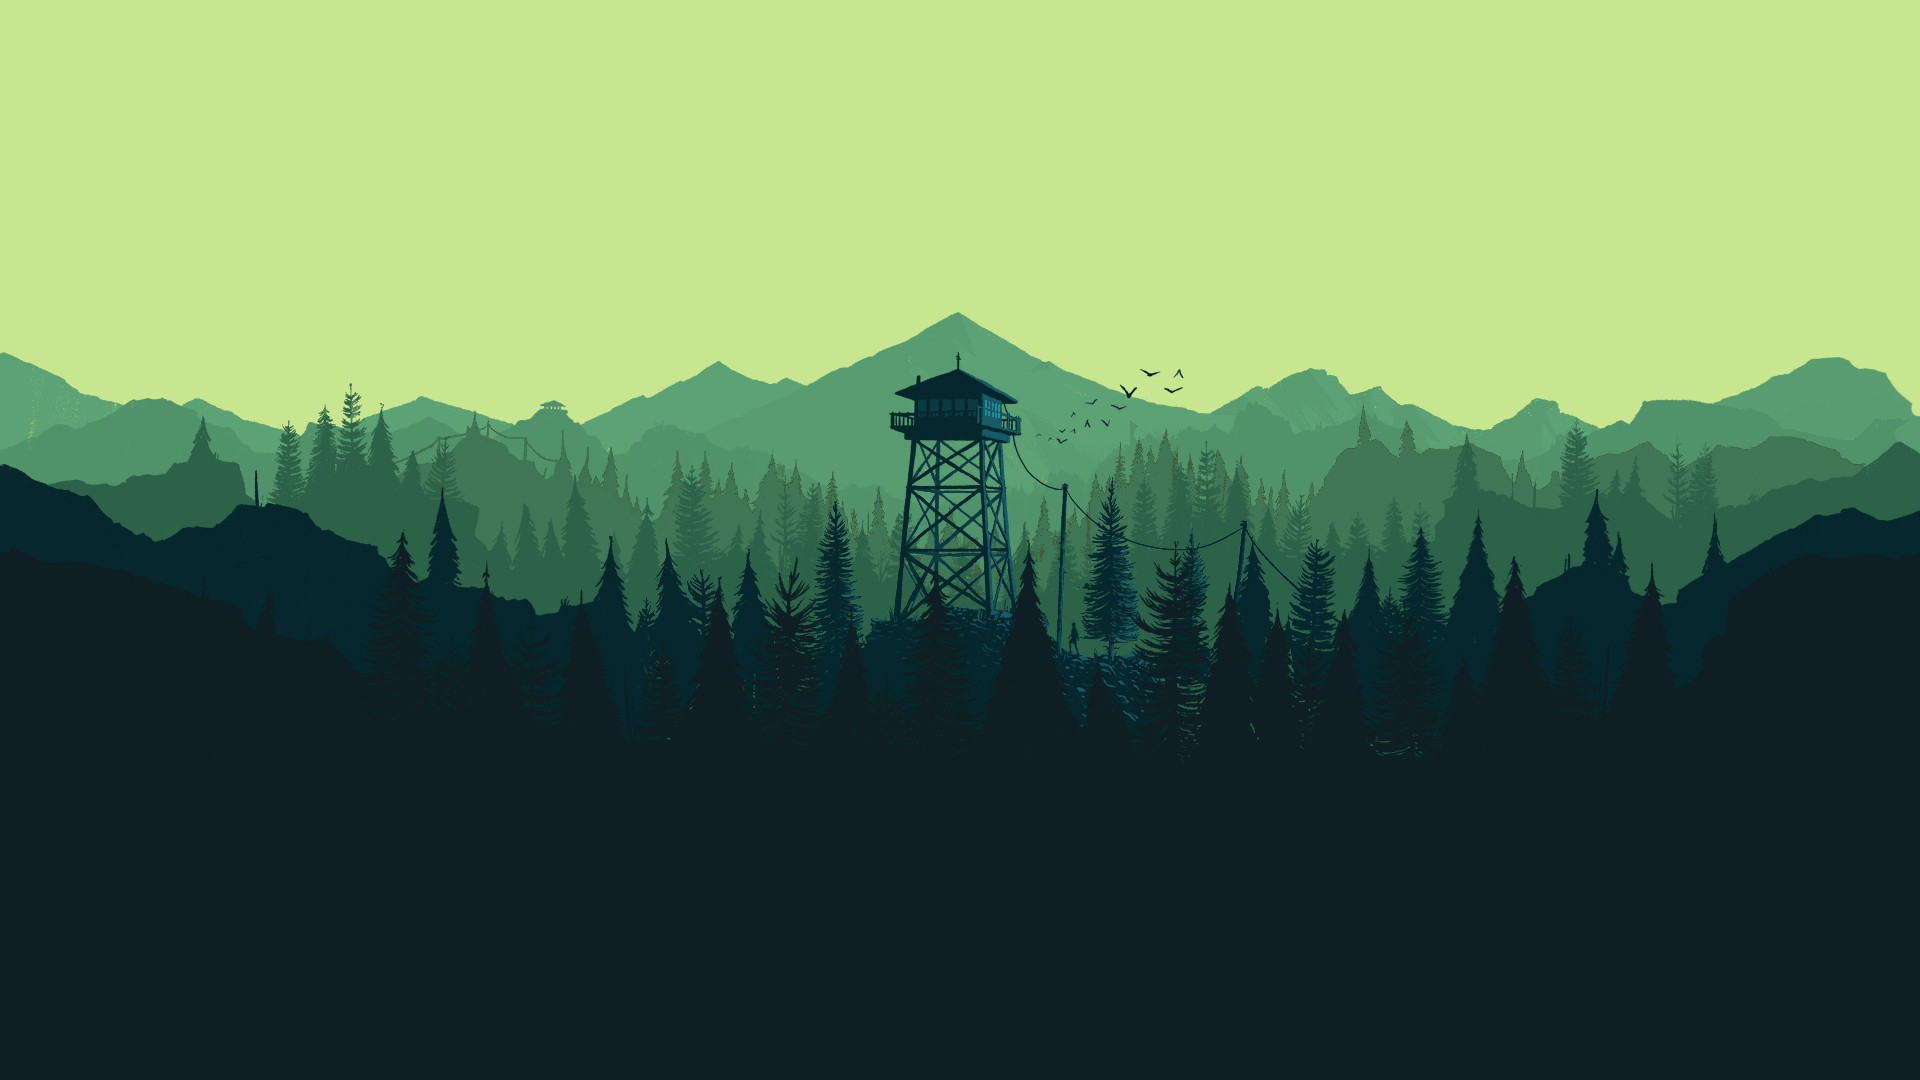 Gravity Falls Wallpaper Forest 38 Firewatch Wallpapers 183 ① Download Free Beautiful High